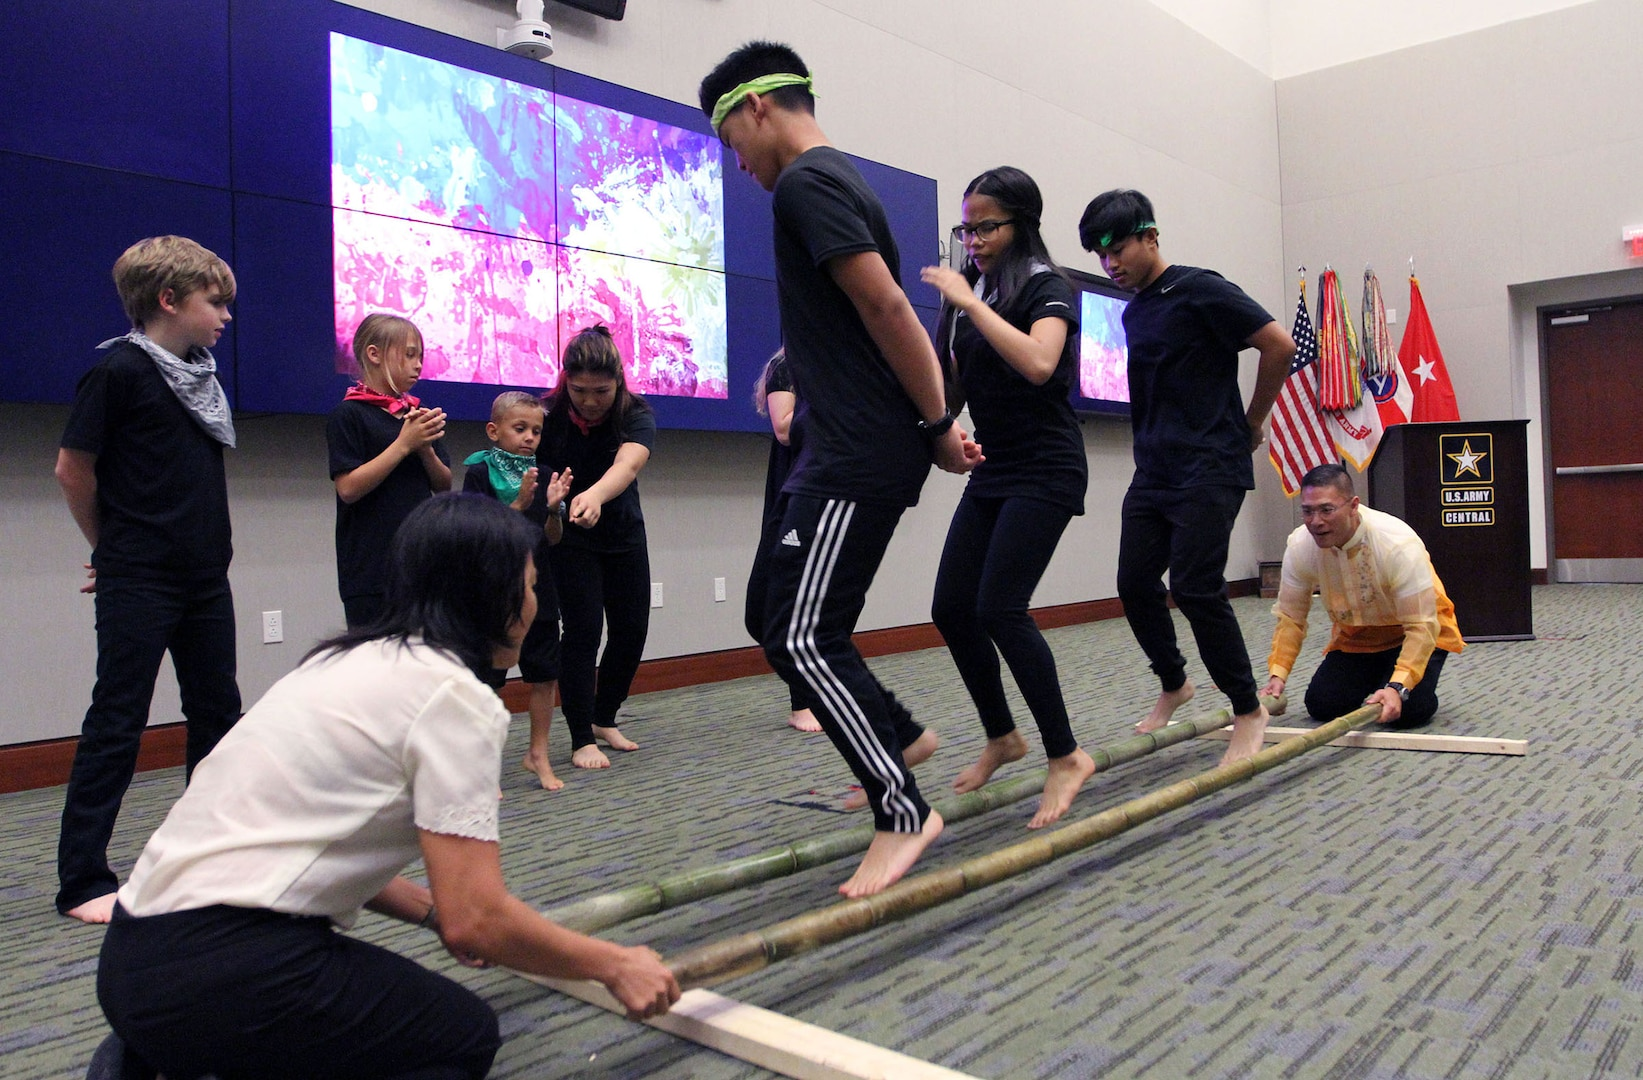 Several U.S. Army Central children perform the Tinikling, as Col. Roy Banzon, USARCENT inspector general commander, and Marlyn Banzon, Banzon's wife, hit and tap the bamboo poles in rhythm to the music during USARCENT's observance for Asian American and Pacific Islander Heritage Month at Patton Hall May 24. (U.S. Army Photo by Sgt. Matthew Kuzara)